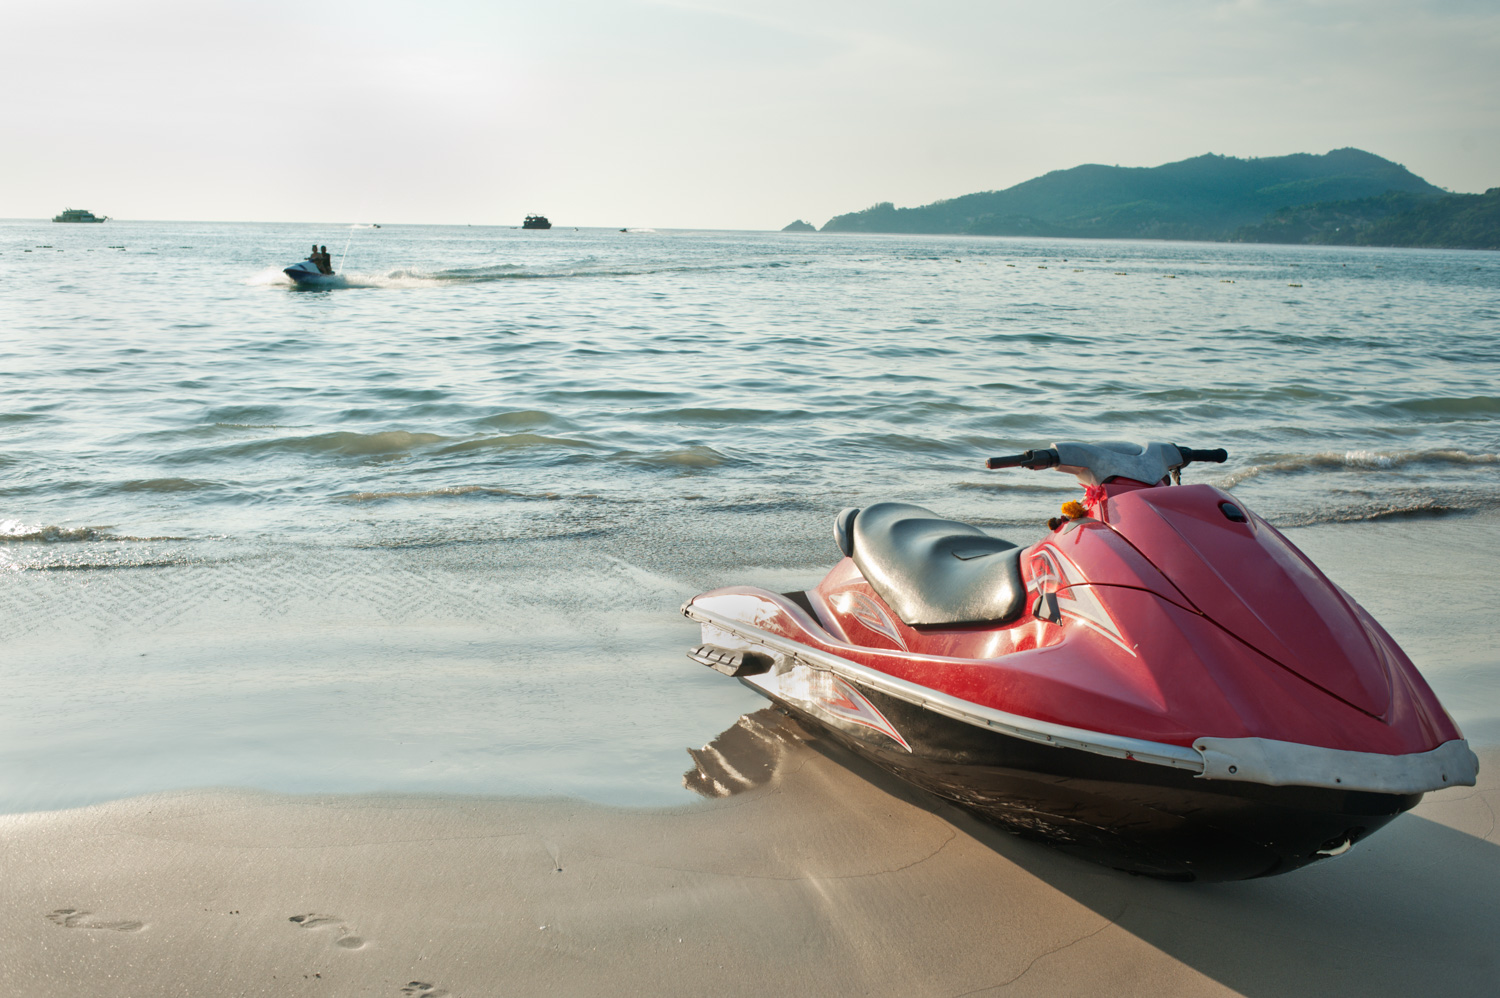 When should you obtain a model or property release? Jet ski on the beach